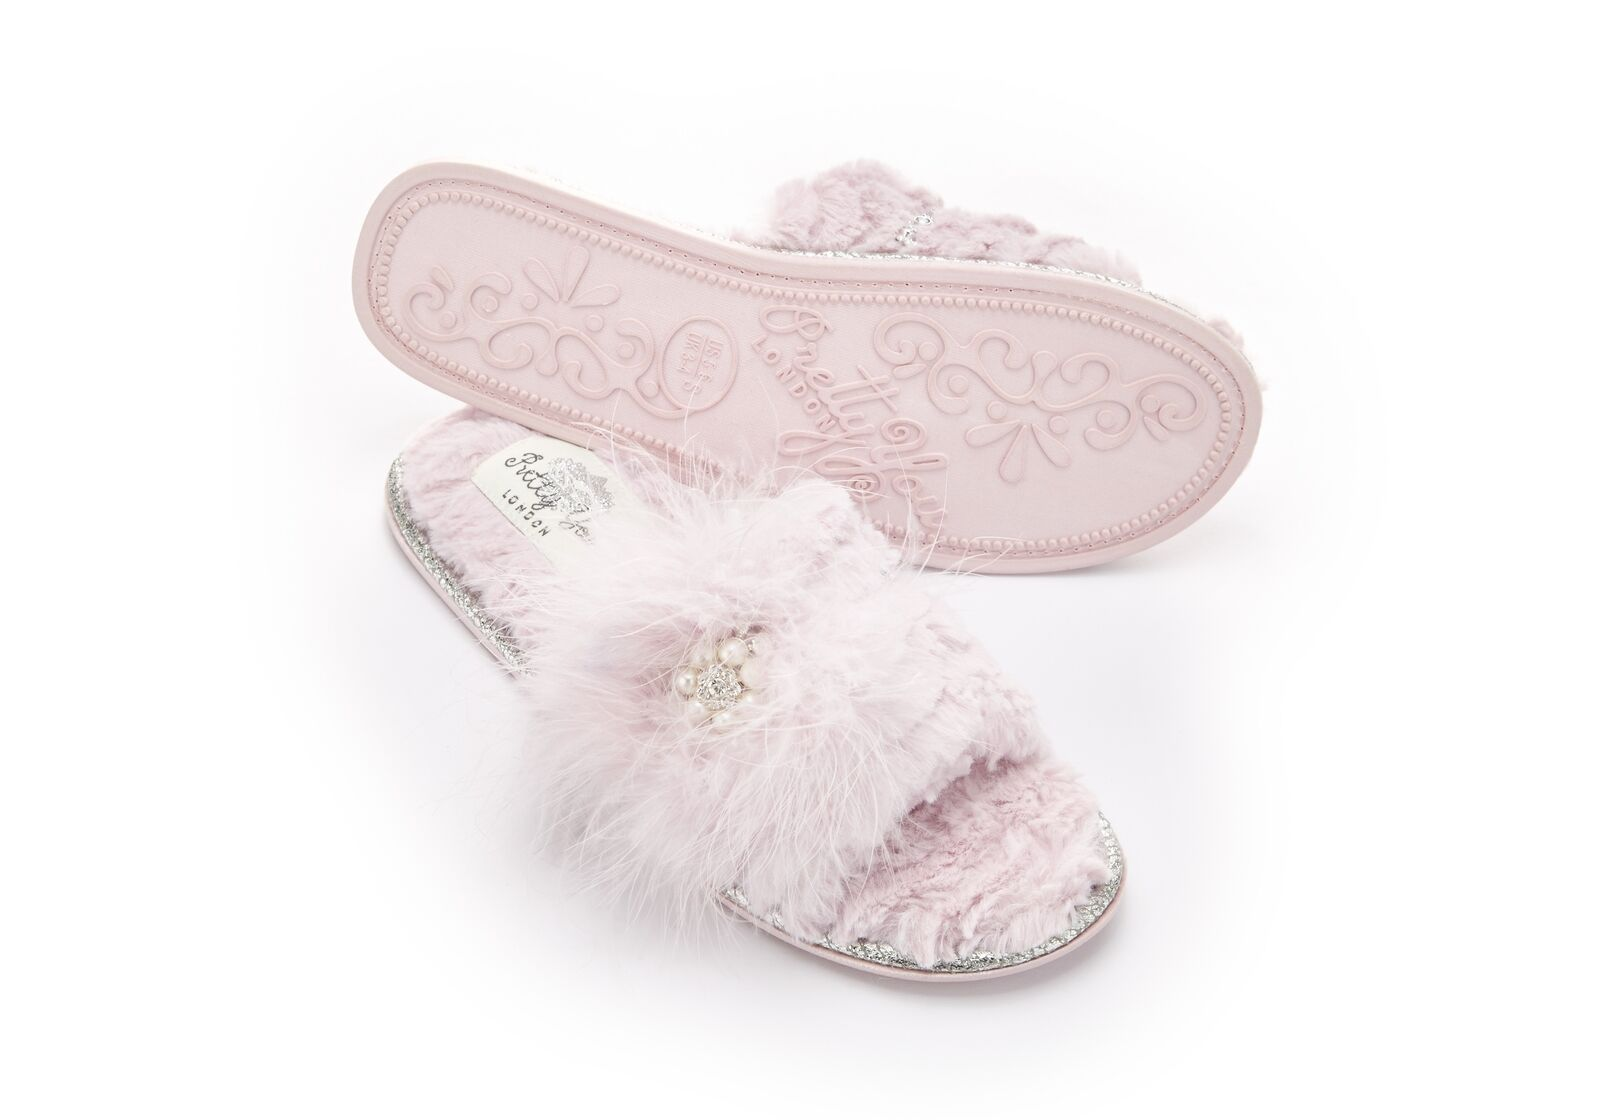 Pretty Band You London E7 Women's Footwear One Band Pretty Pink Slippers Odette Choose Size d1289b